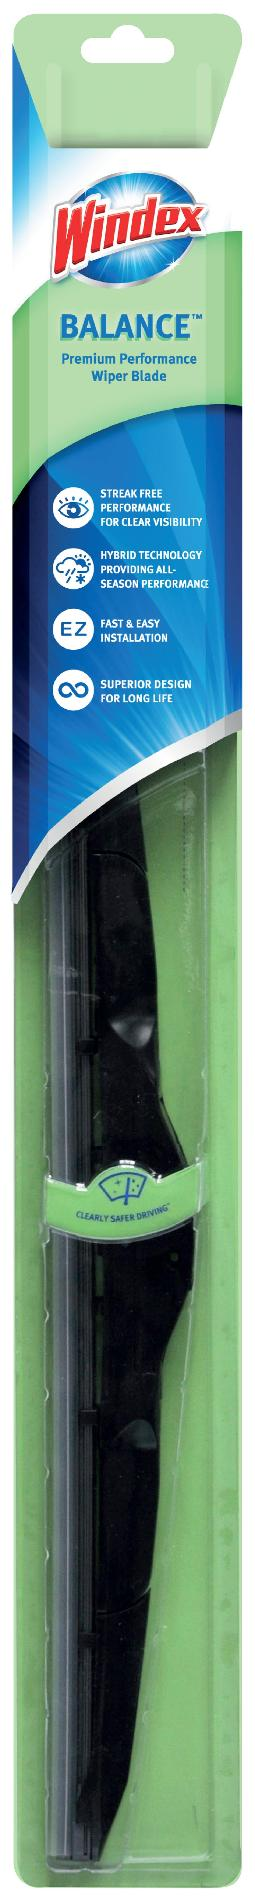 Image of Windex 16 IN Balance Wiper Blade